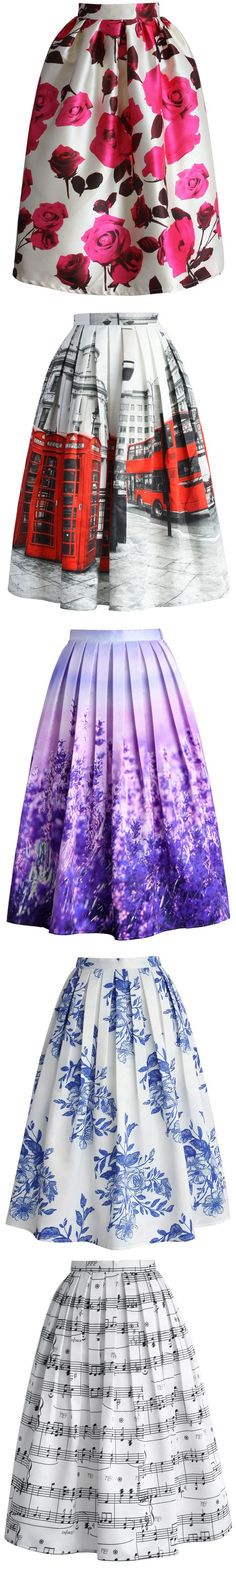 floral skirt, scenic print midi skirt collection: